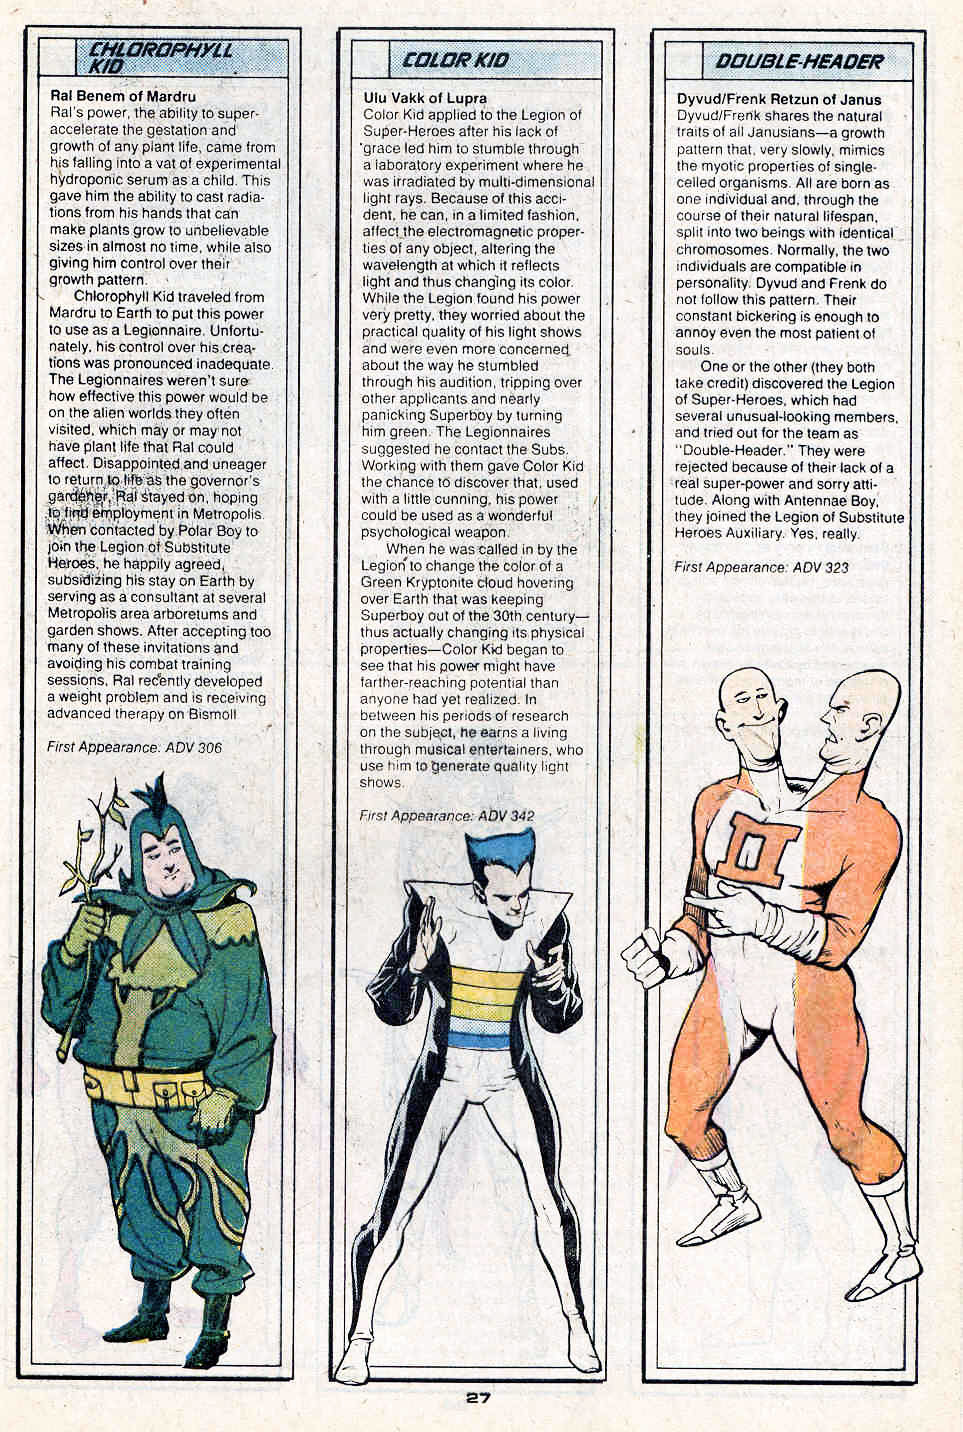 Chlorophyll Kid, Color Kid by Keith Giffen and Richard Bruning, and Double-Header by Ty Templeton - Who's Who in the Legion of Super-Heroes #3